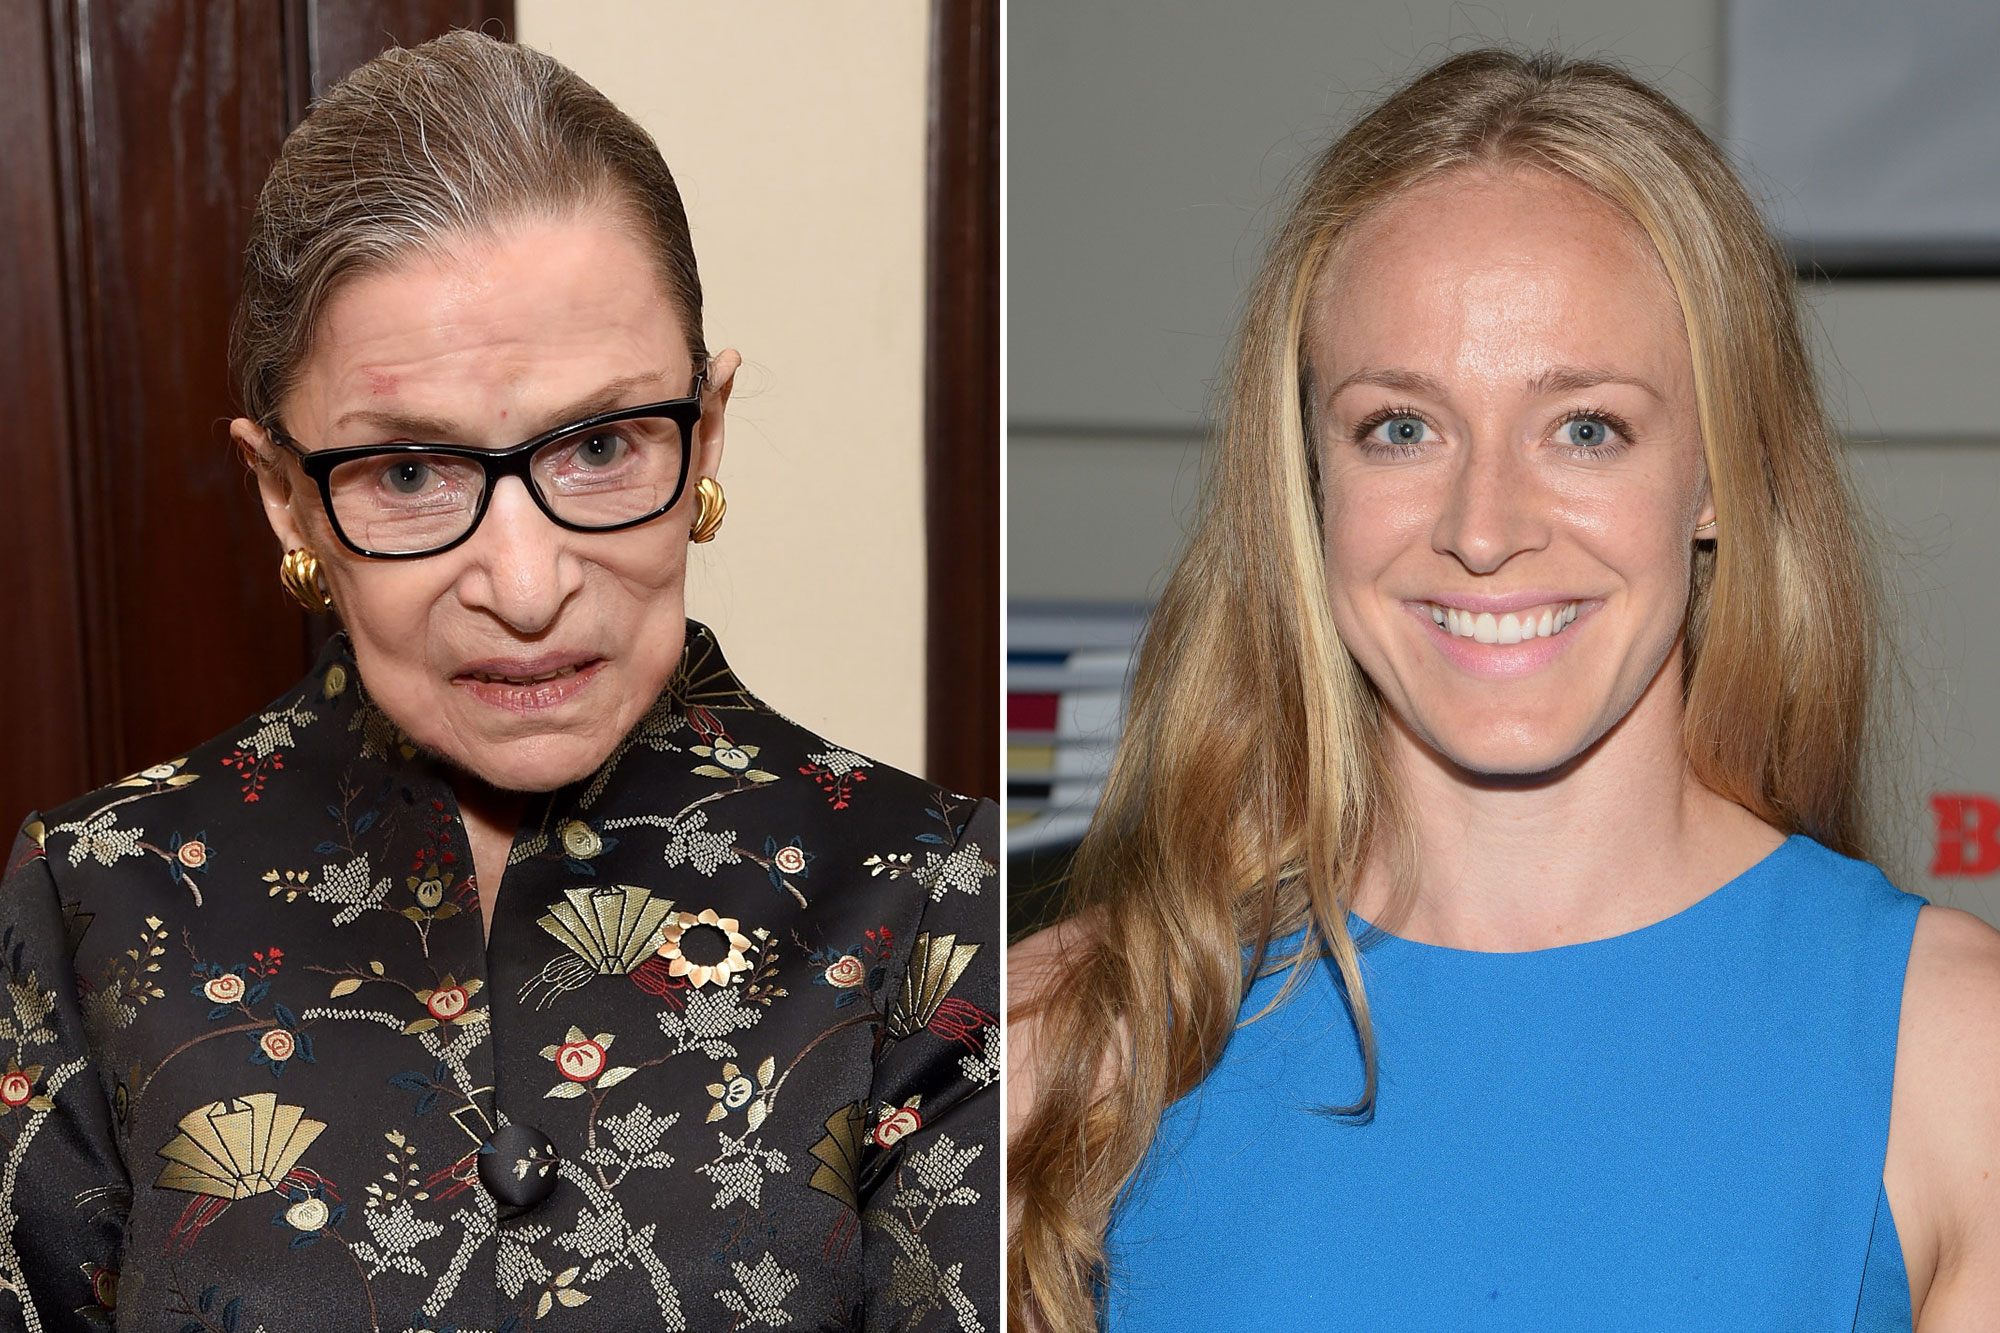 Supreme Court Justice Ruth Bader Ginsburg and Becky Sauerbrunn